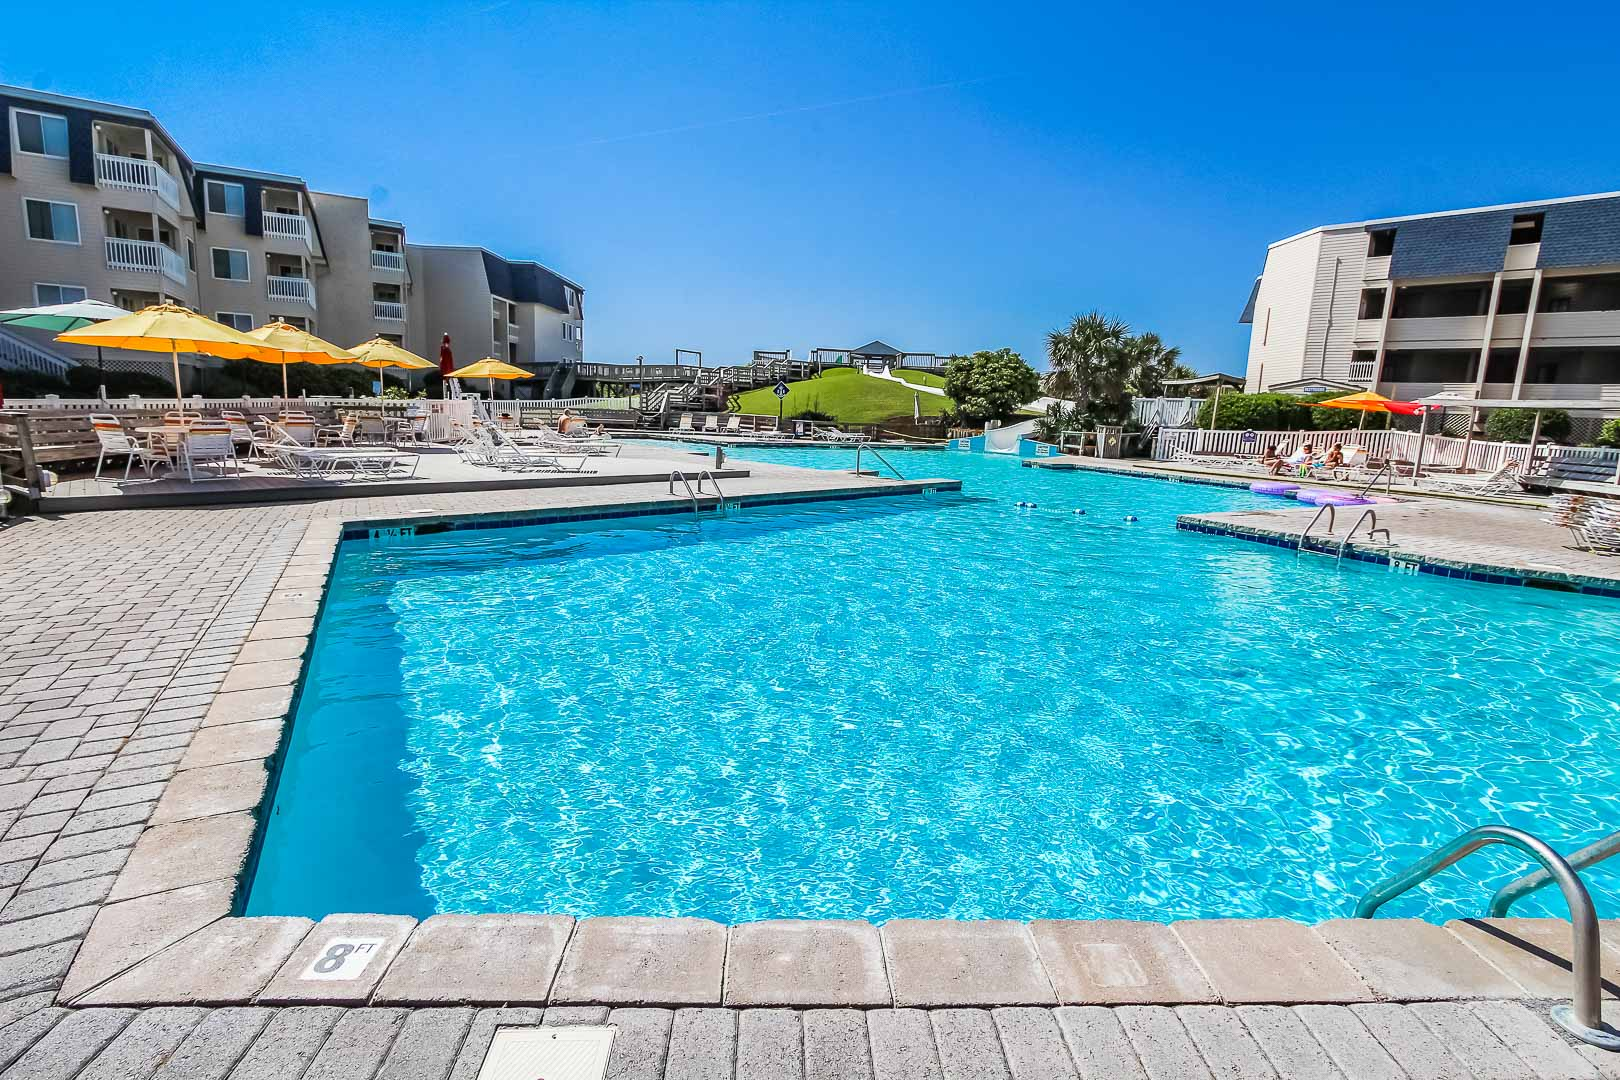 A refreshing pool at VRI's A Place at the Beach III in North Carolina